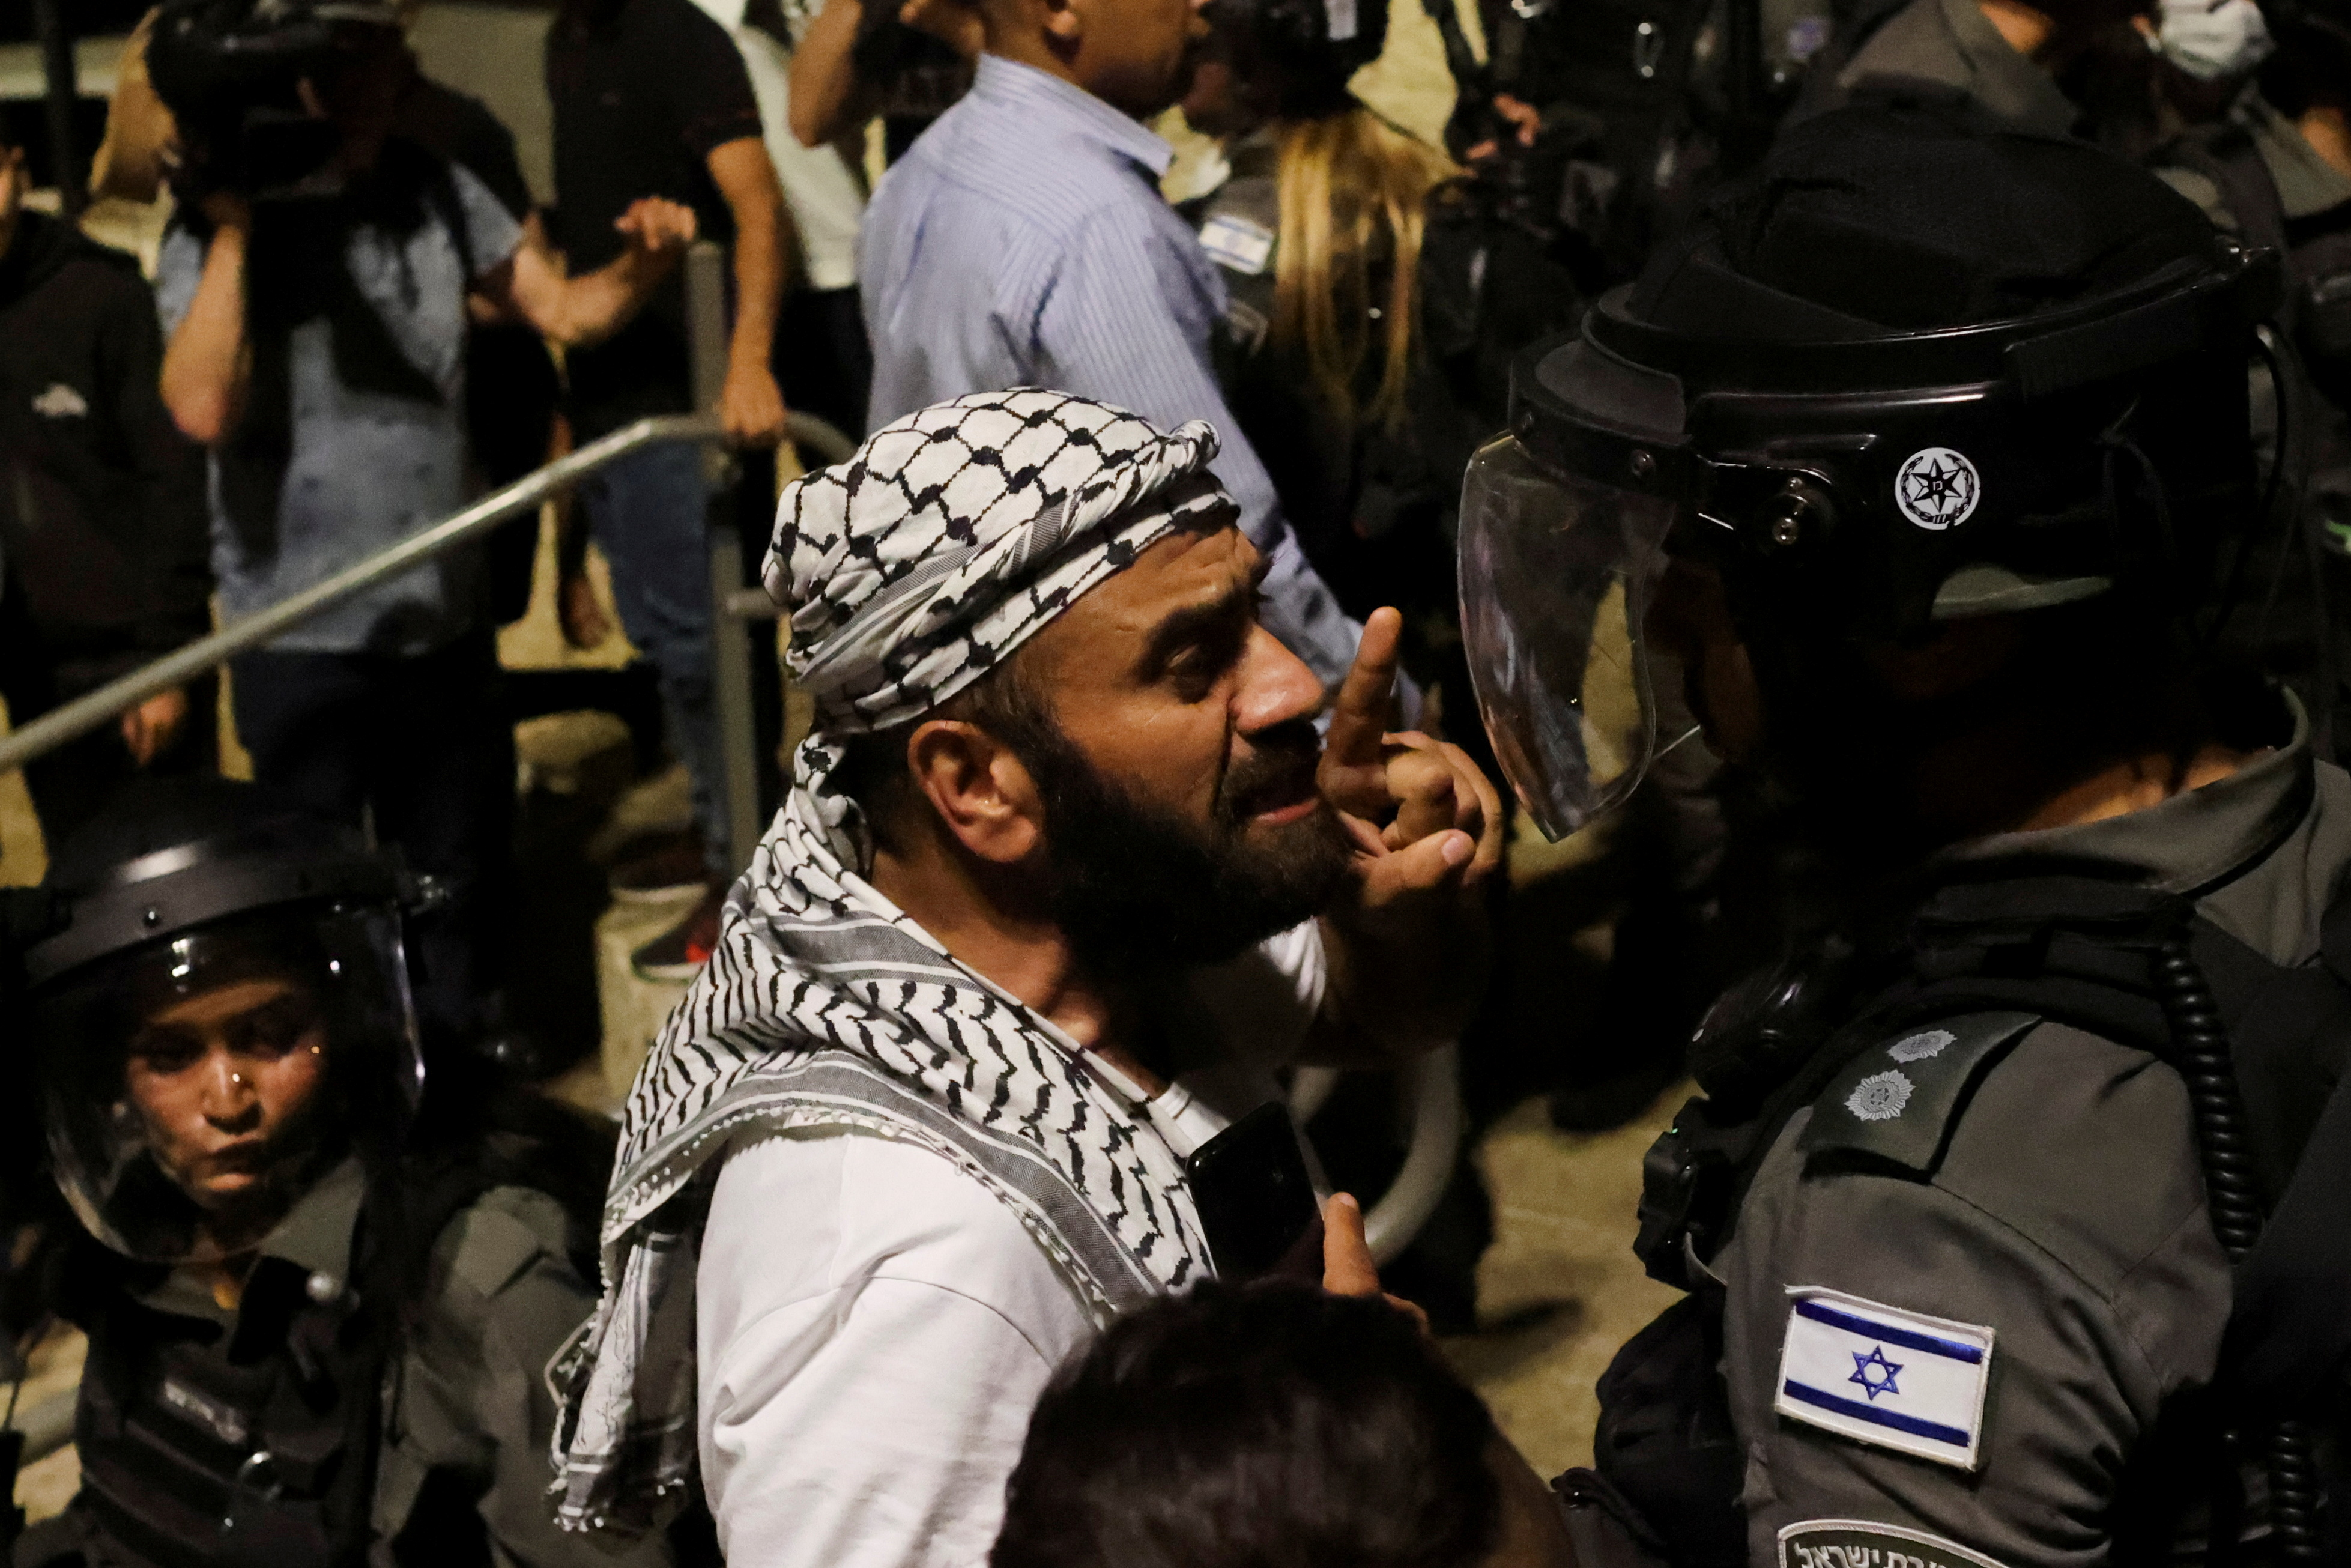 A Palestinian man gestures as he argues with an Israeli border policeman by the entrance to Jerusalem's Old City May 9, 2021.  REUTERS/Ronen Zvulun